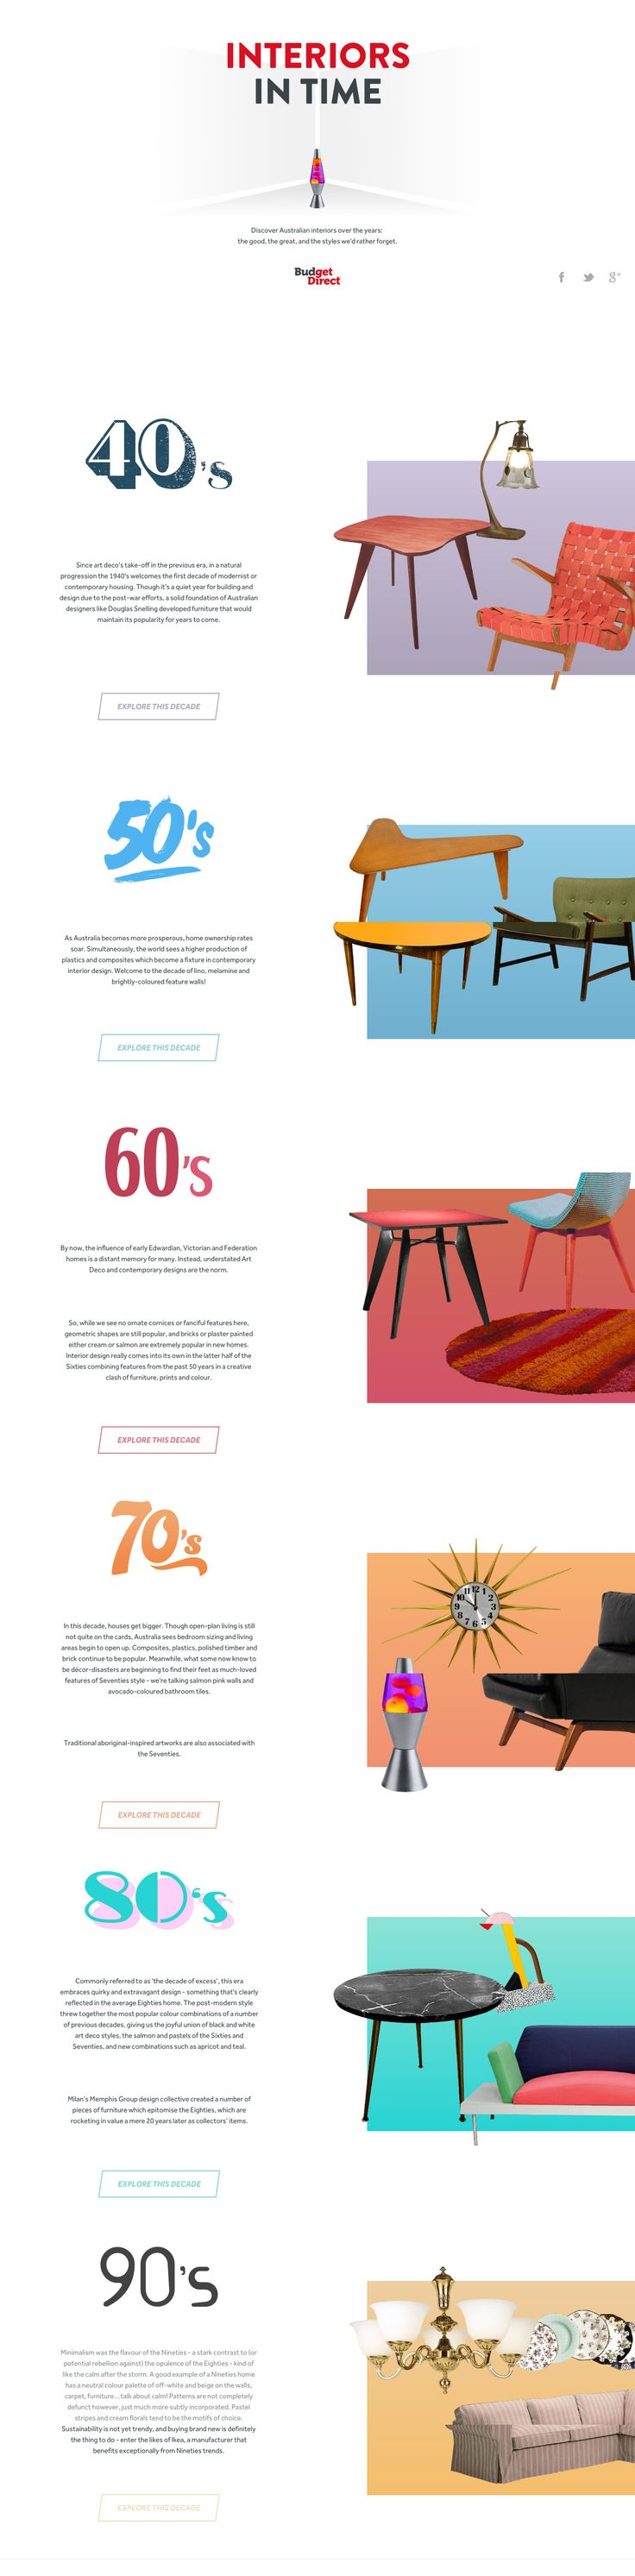 'Interiors in Time' is an interesting One Pager taking a look at the history of Australian interior design through the years. Each (AJAX loading) decade features fun illustrations including interactive Hot Spots with tons of information.